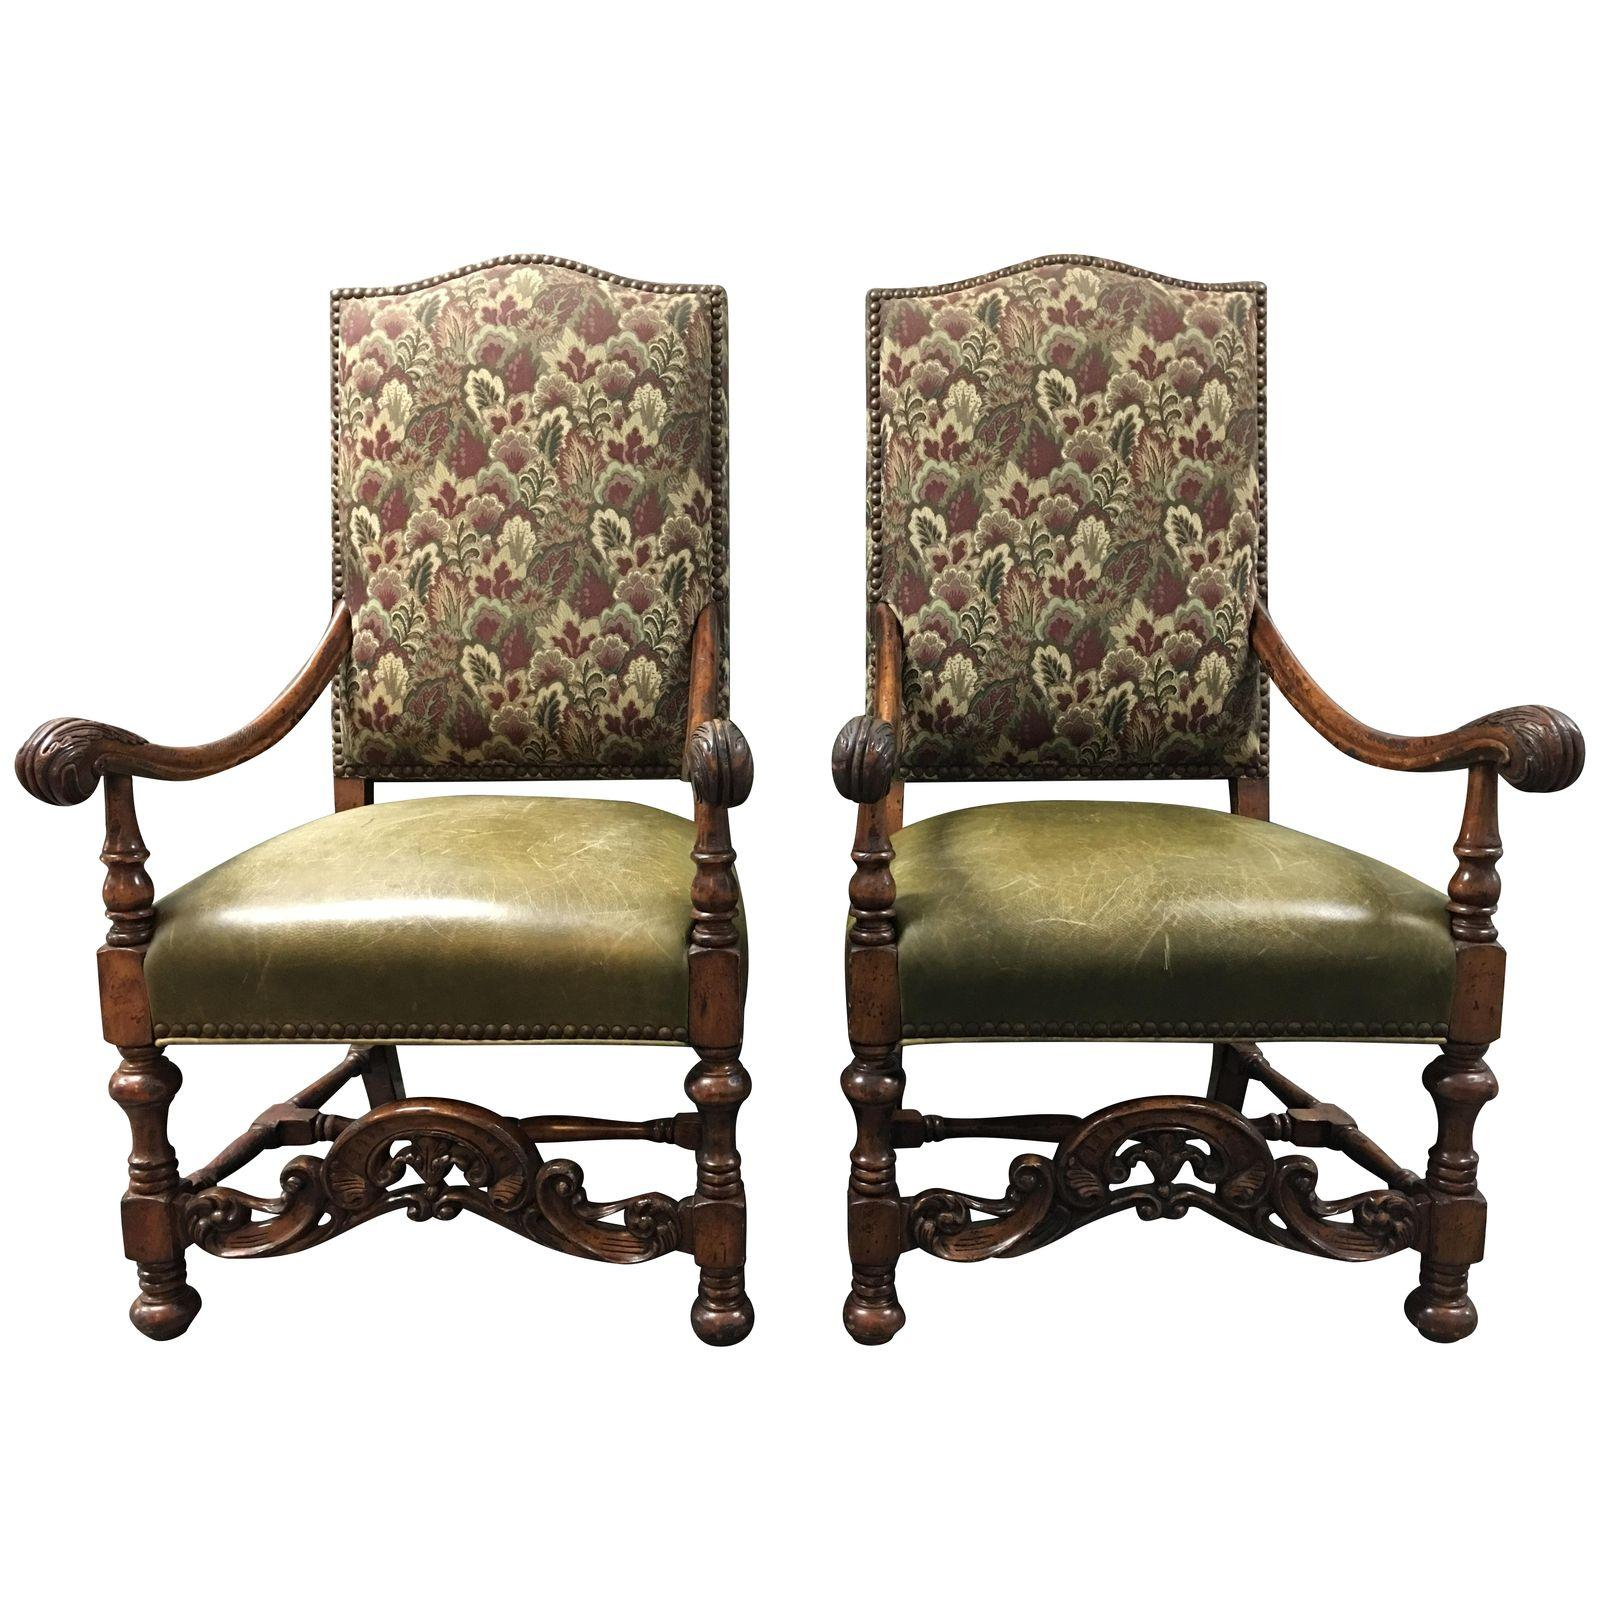 Guy Chaddock Chairs A Pair Original 4 000 00 Design Plus Gallery